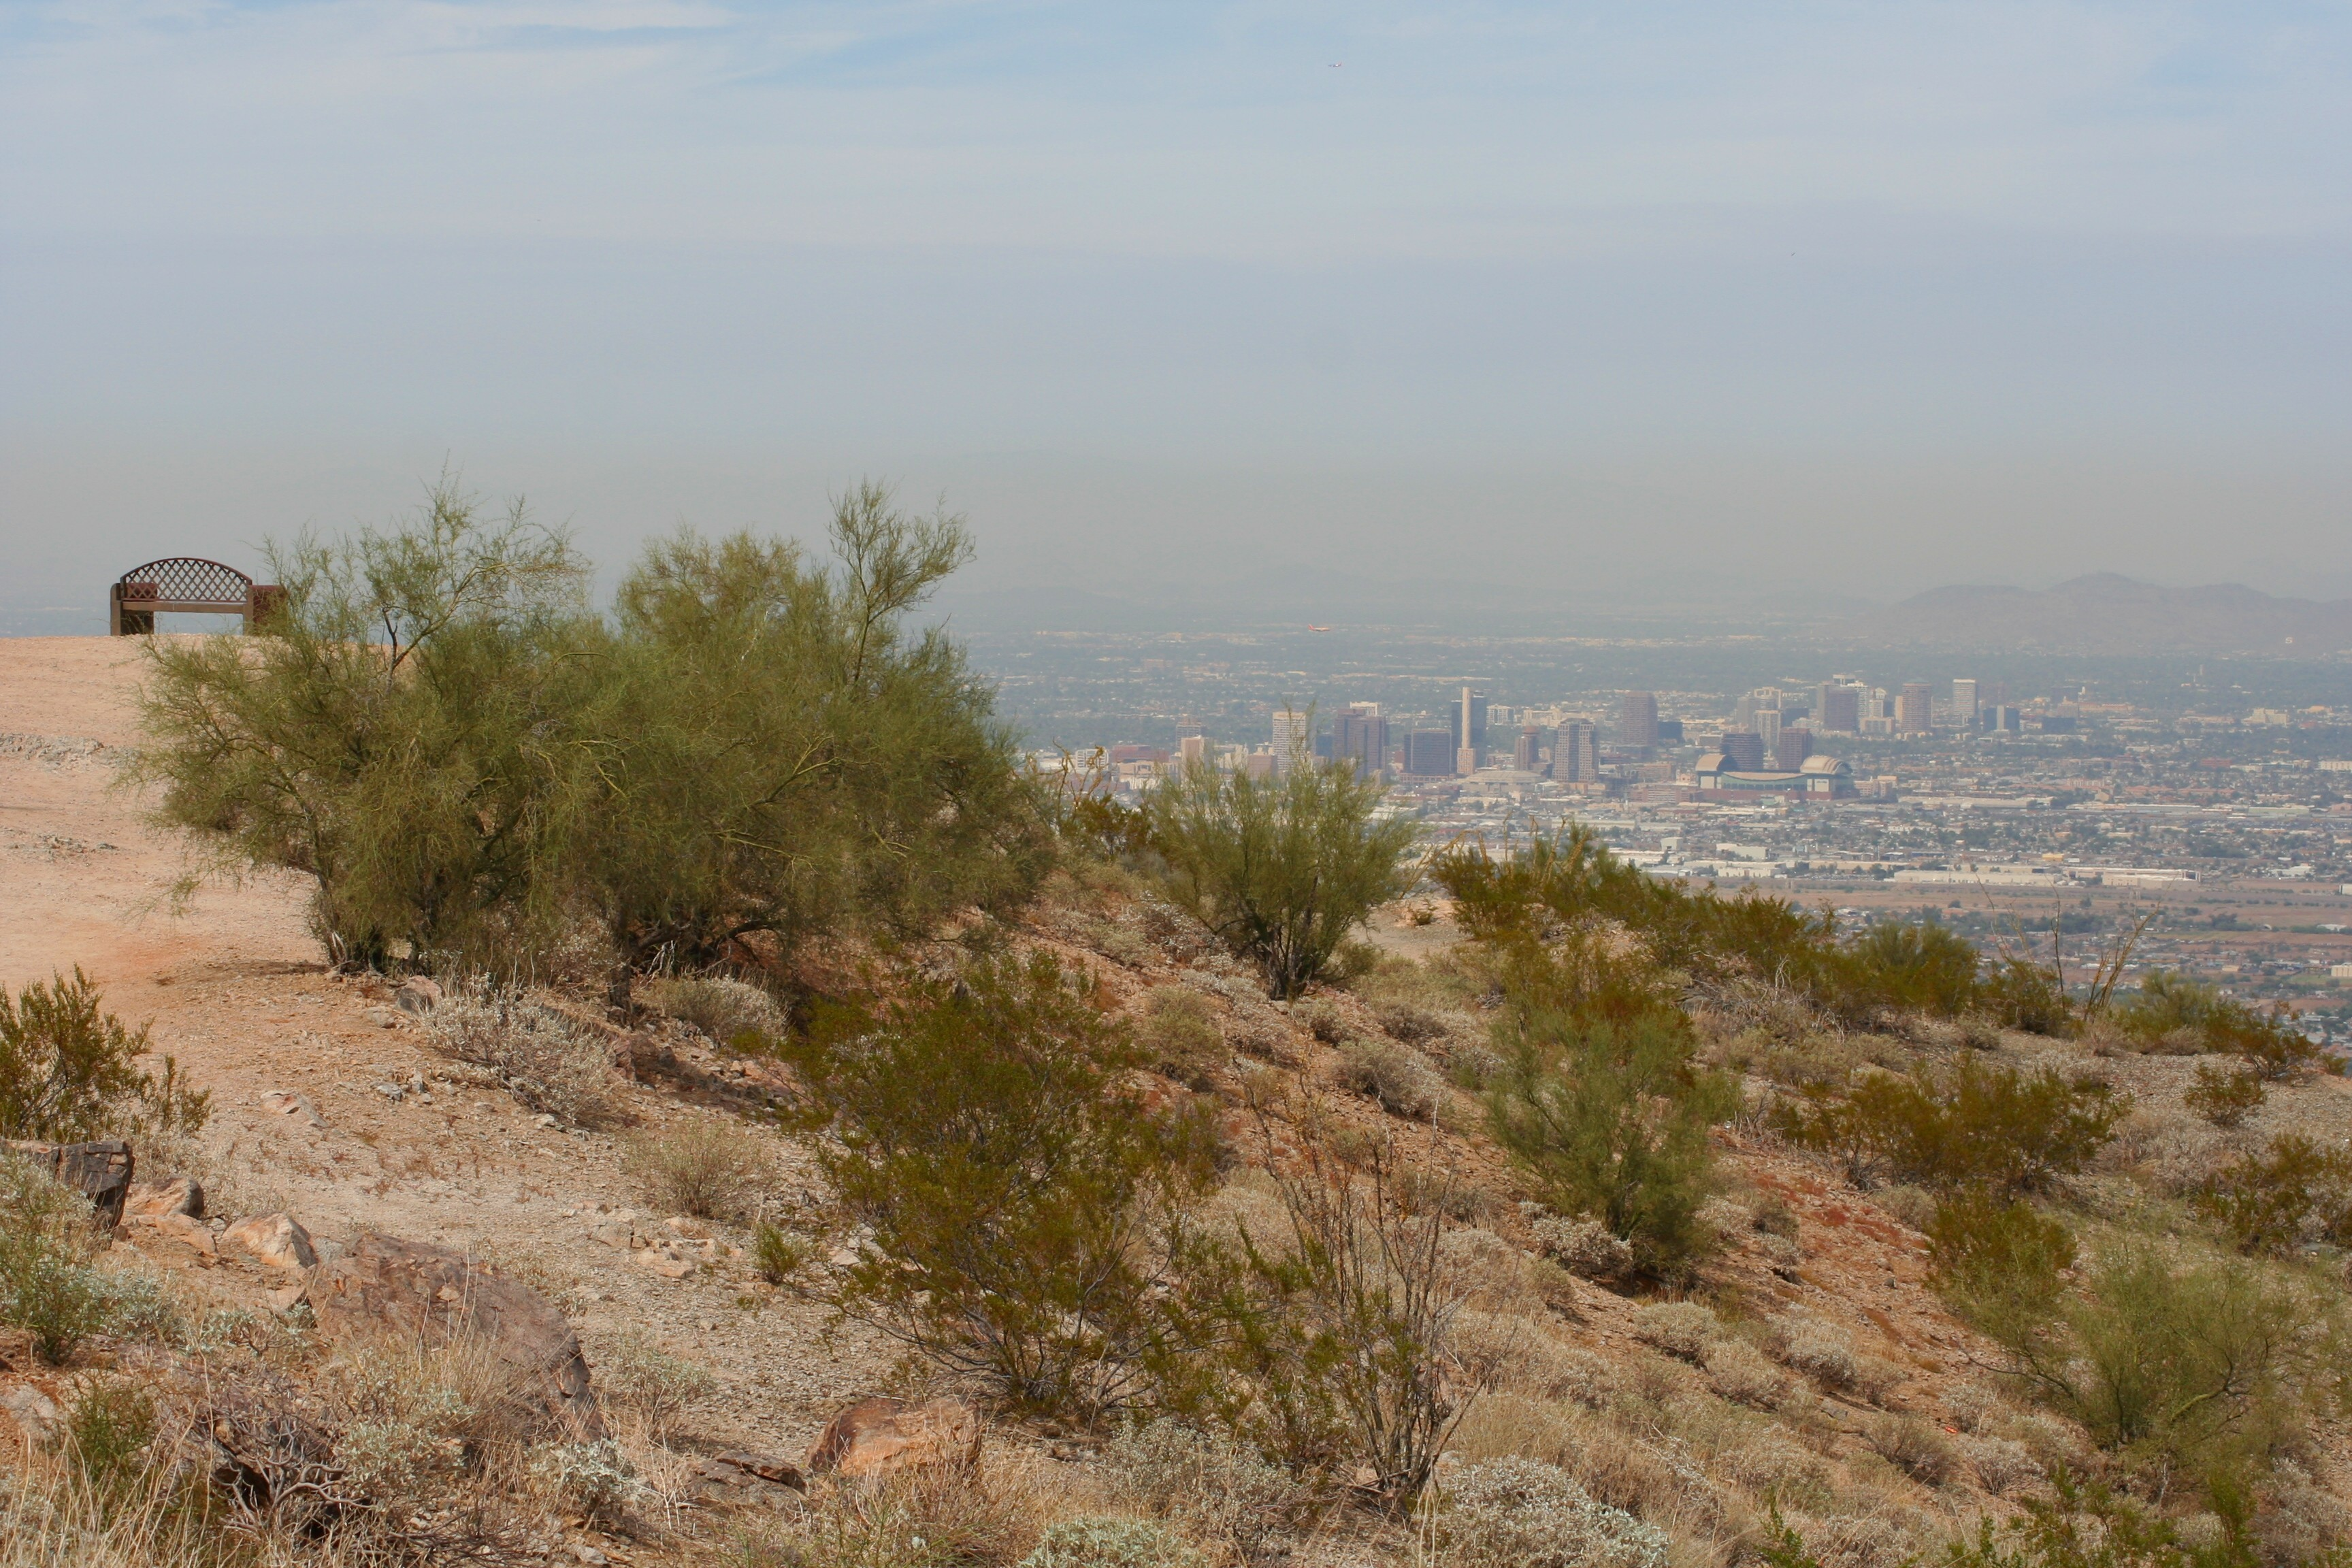 Phoenix, Arizona rang in the new year with dangerous air pollution levels and a pollution advisory still in effect.